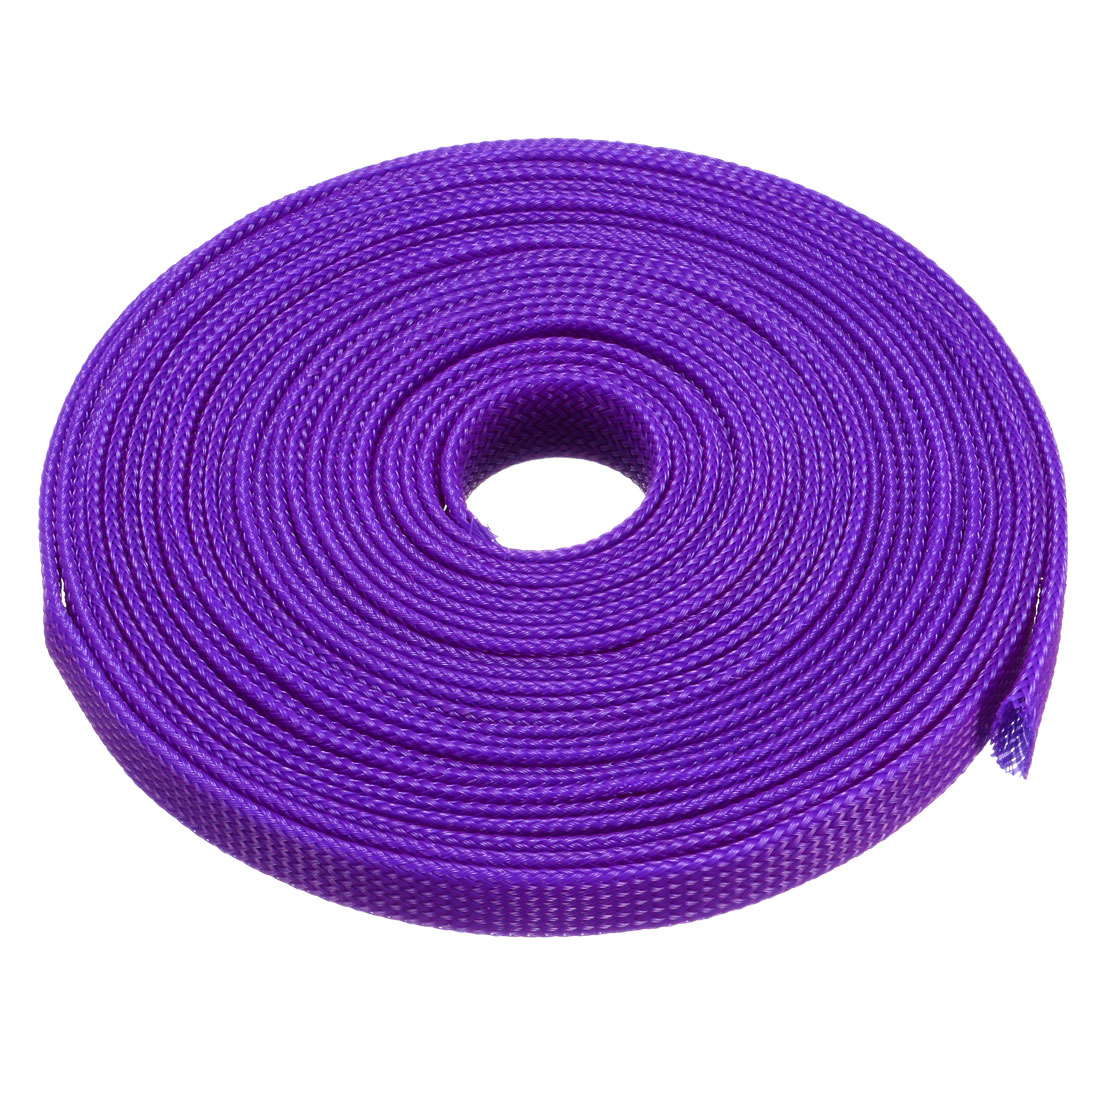 8mm Dia Tight Braided PET Expandable Sleeving Cable Wrap Sheath Purple 16Ft